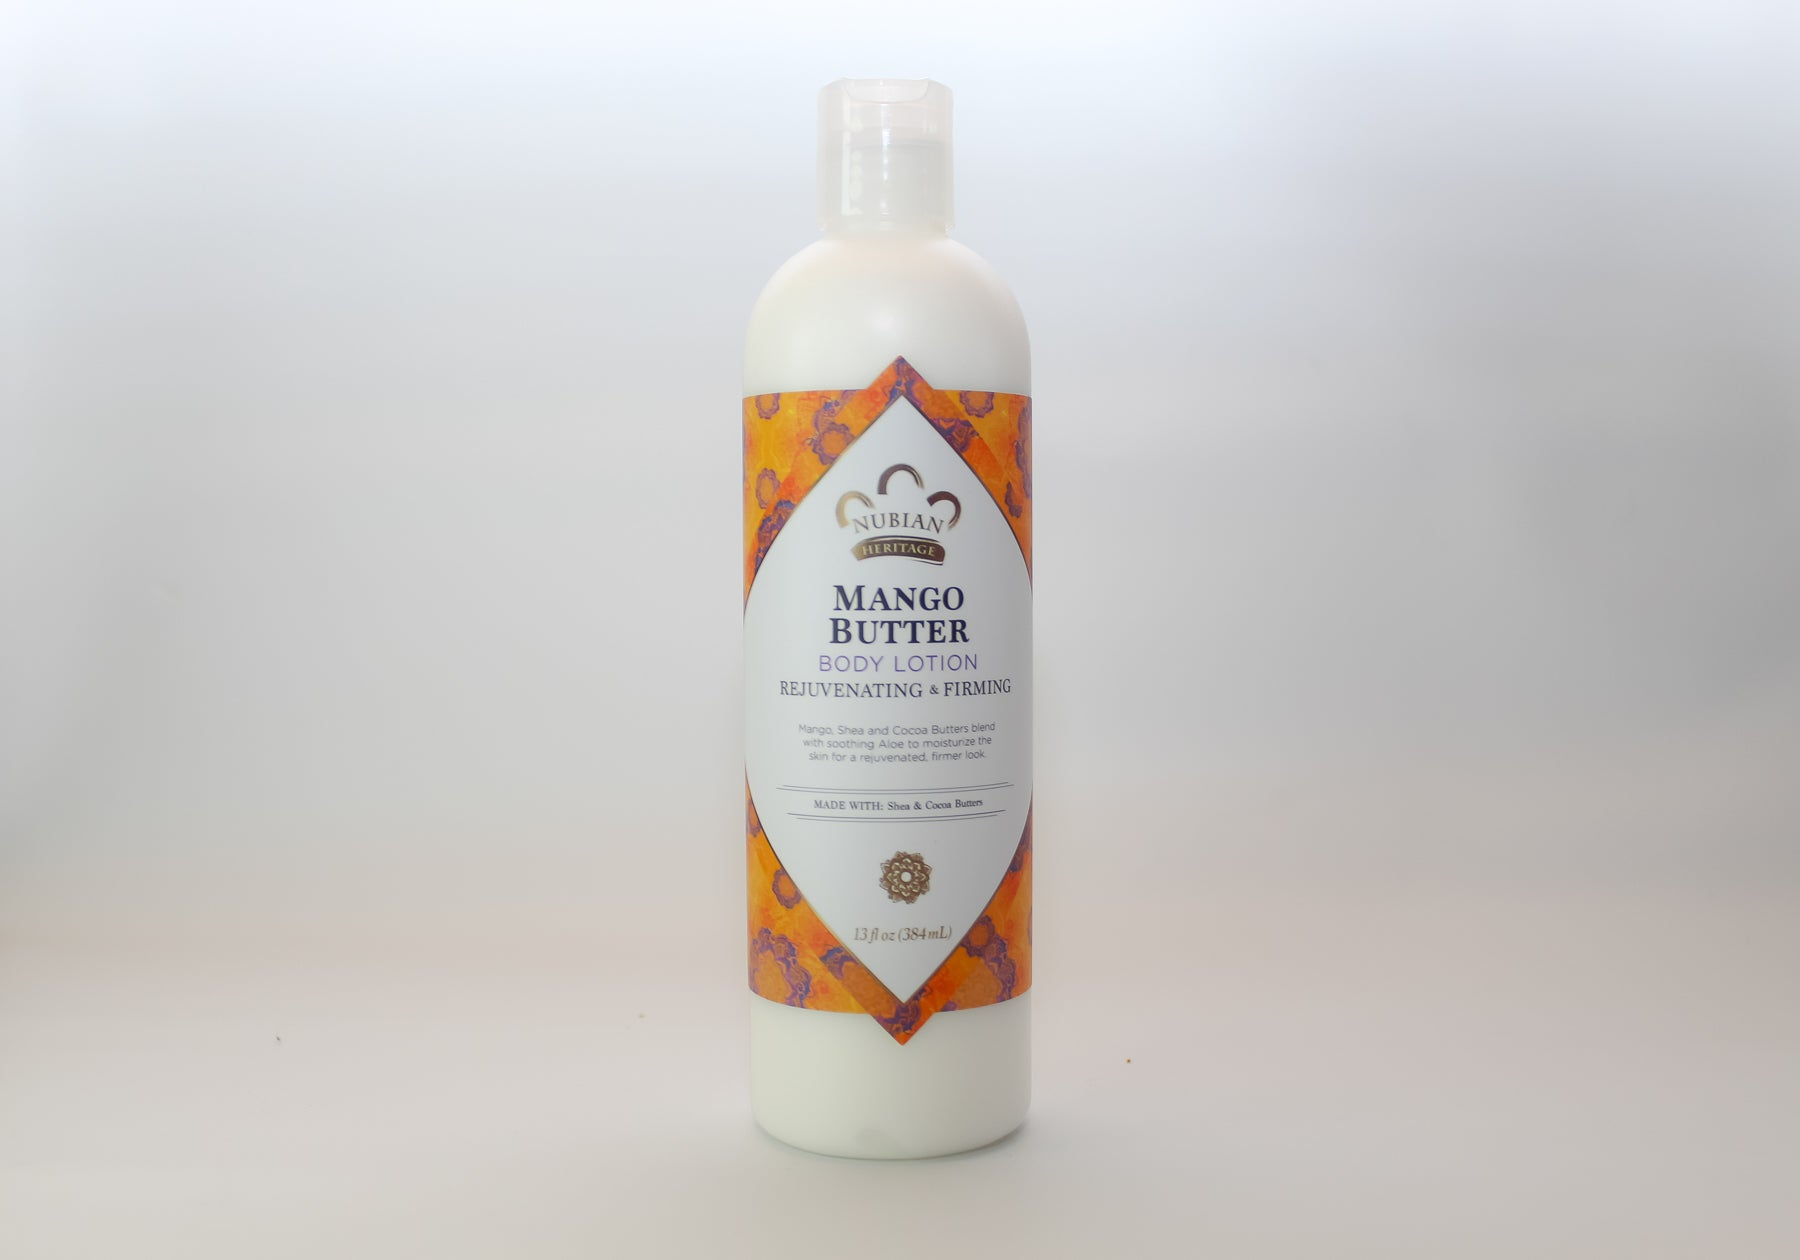 Mango Butter Body Lotion, 13 fl oz